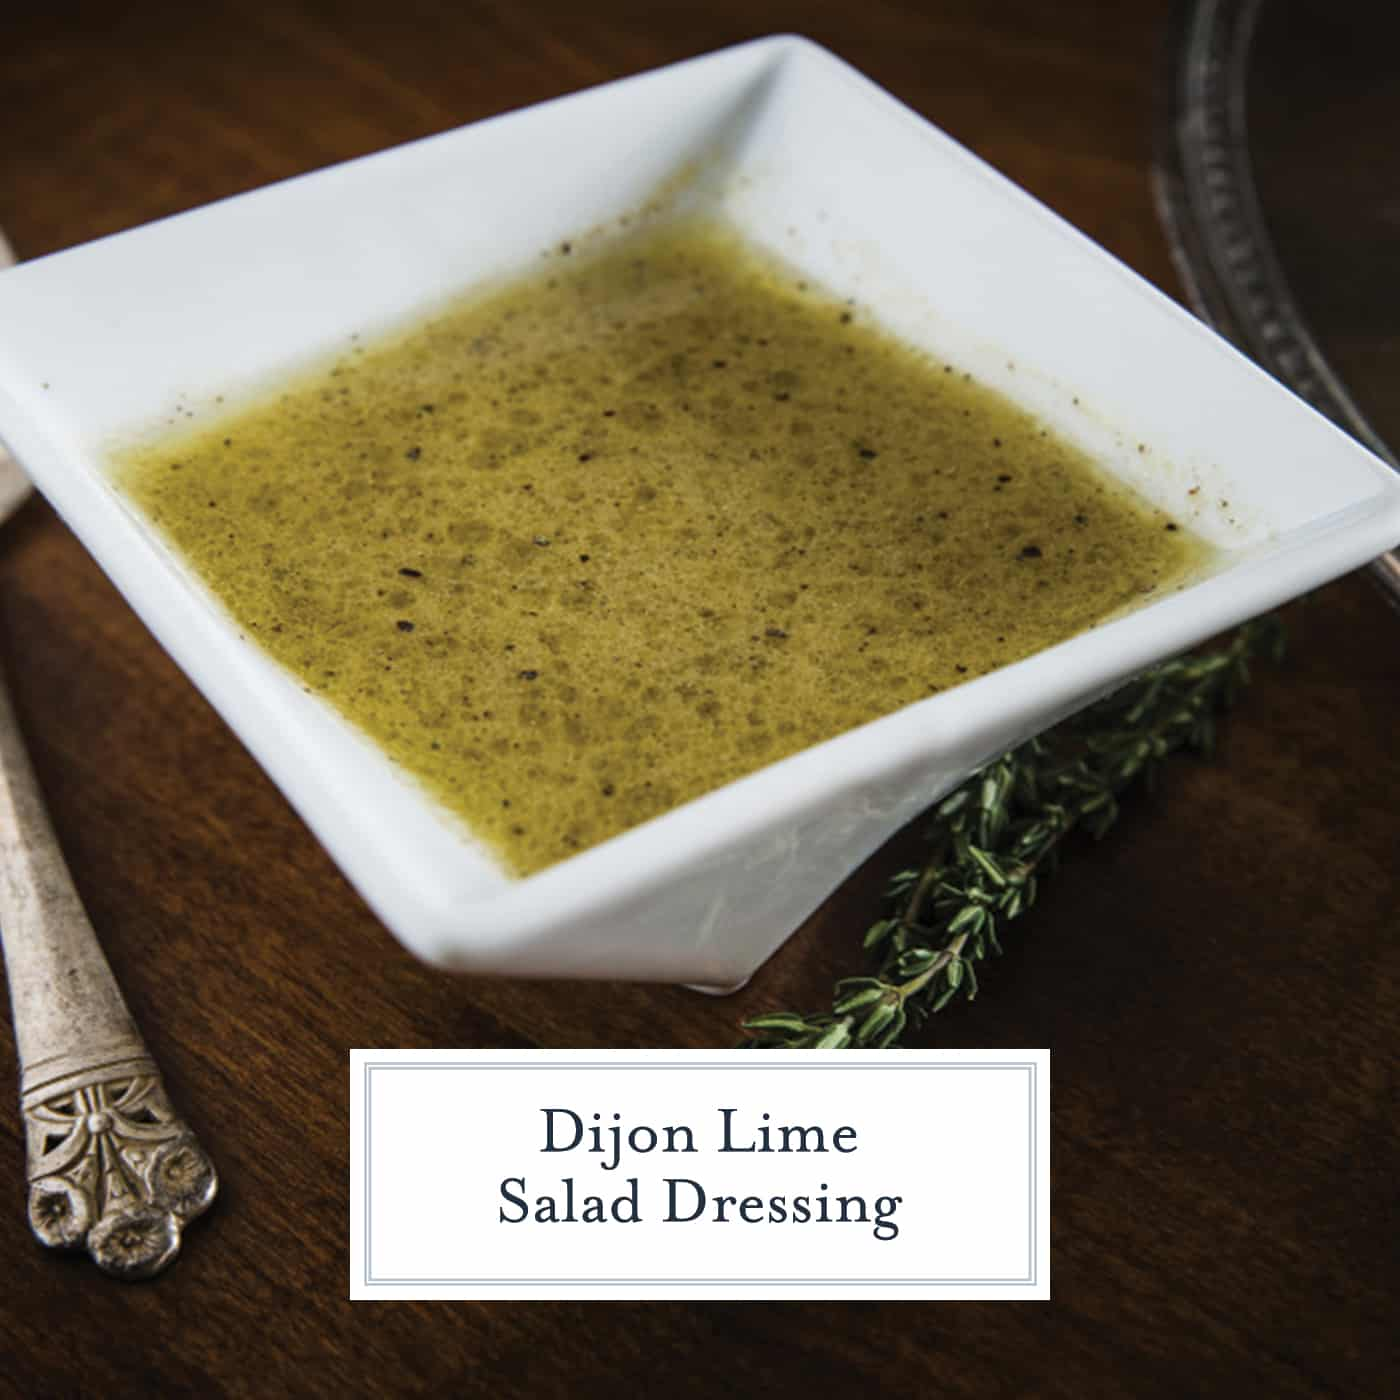 Dijon Lime Salad Dressing is an easy homemade salad dressing with citrus flavors and tangy Dijon mustard. Use on your favorite salad, as a marinade or on grilled or roasted vegetables. #homemadesaladdressing www.savoryexperiments.com